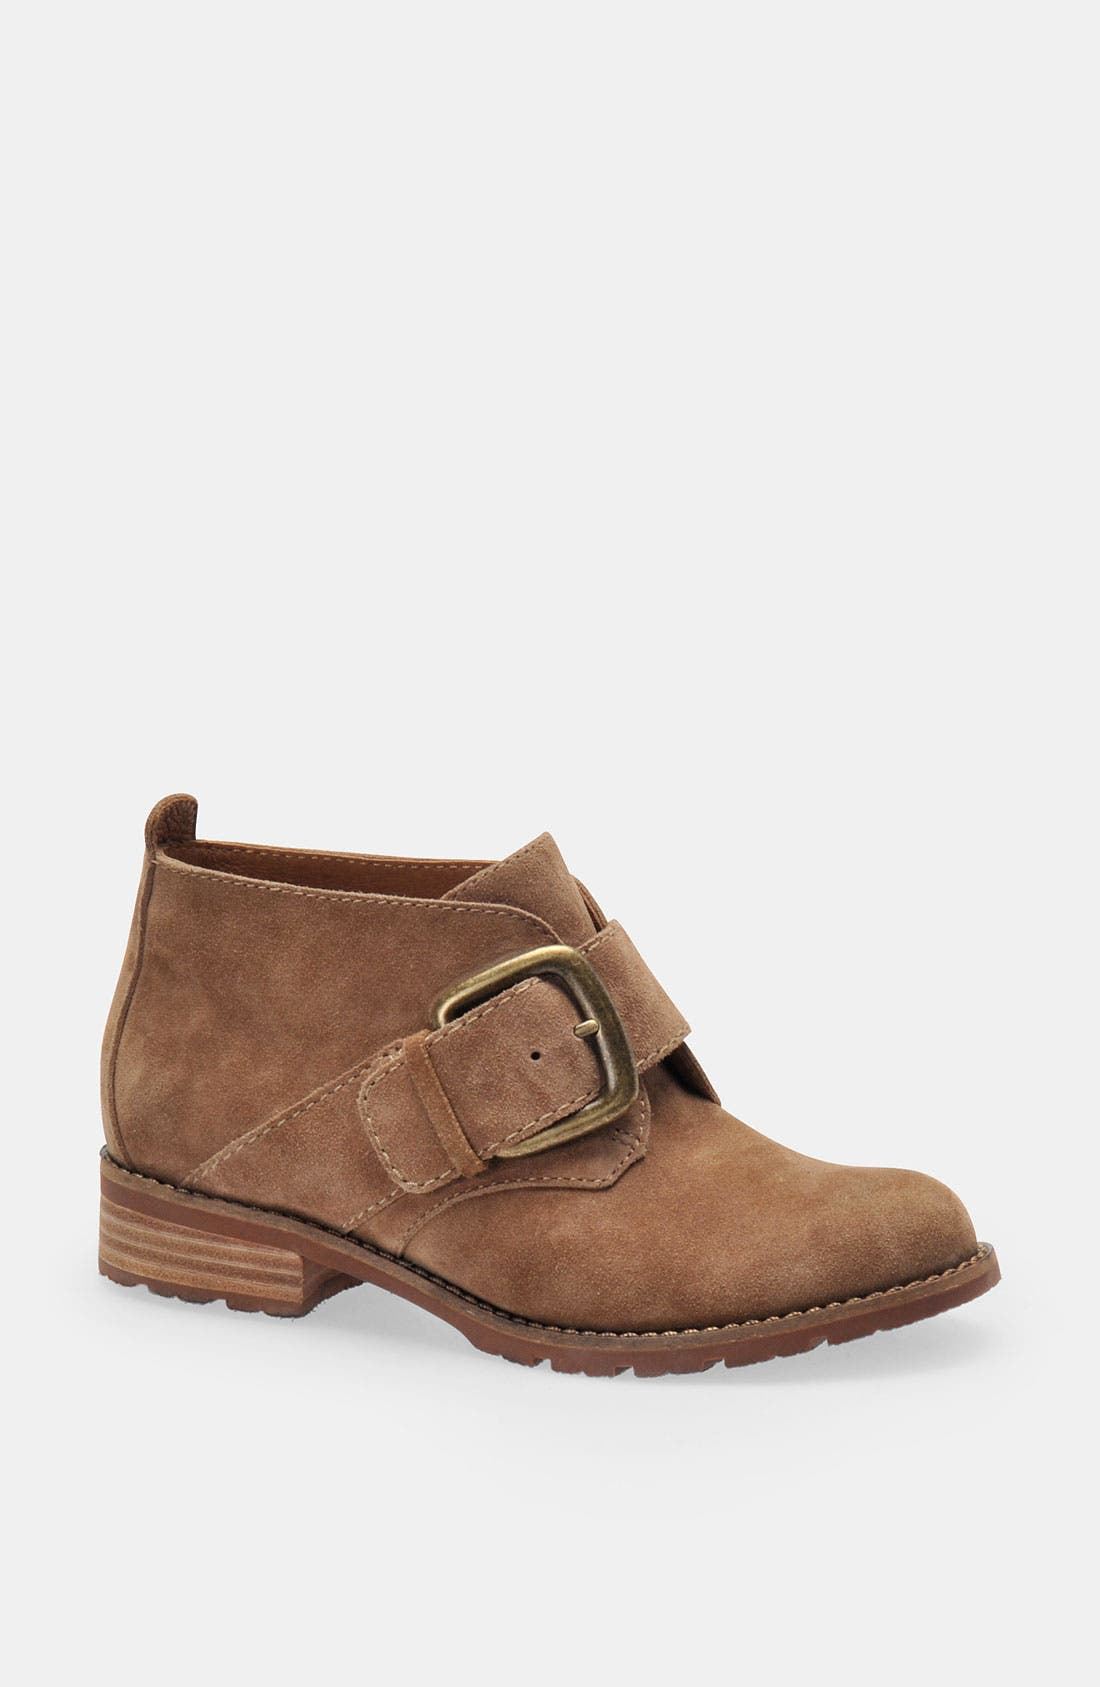 'Boone' Bootie,                             Main thumbnail 1, color,                             Earth Suede